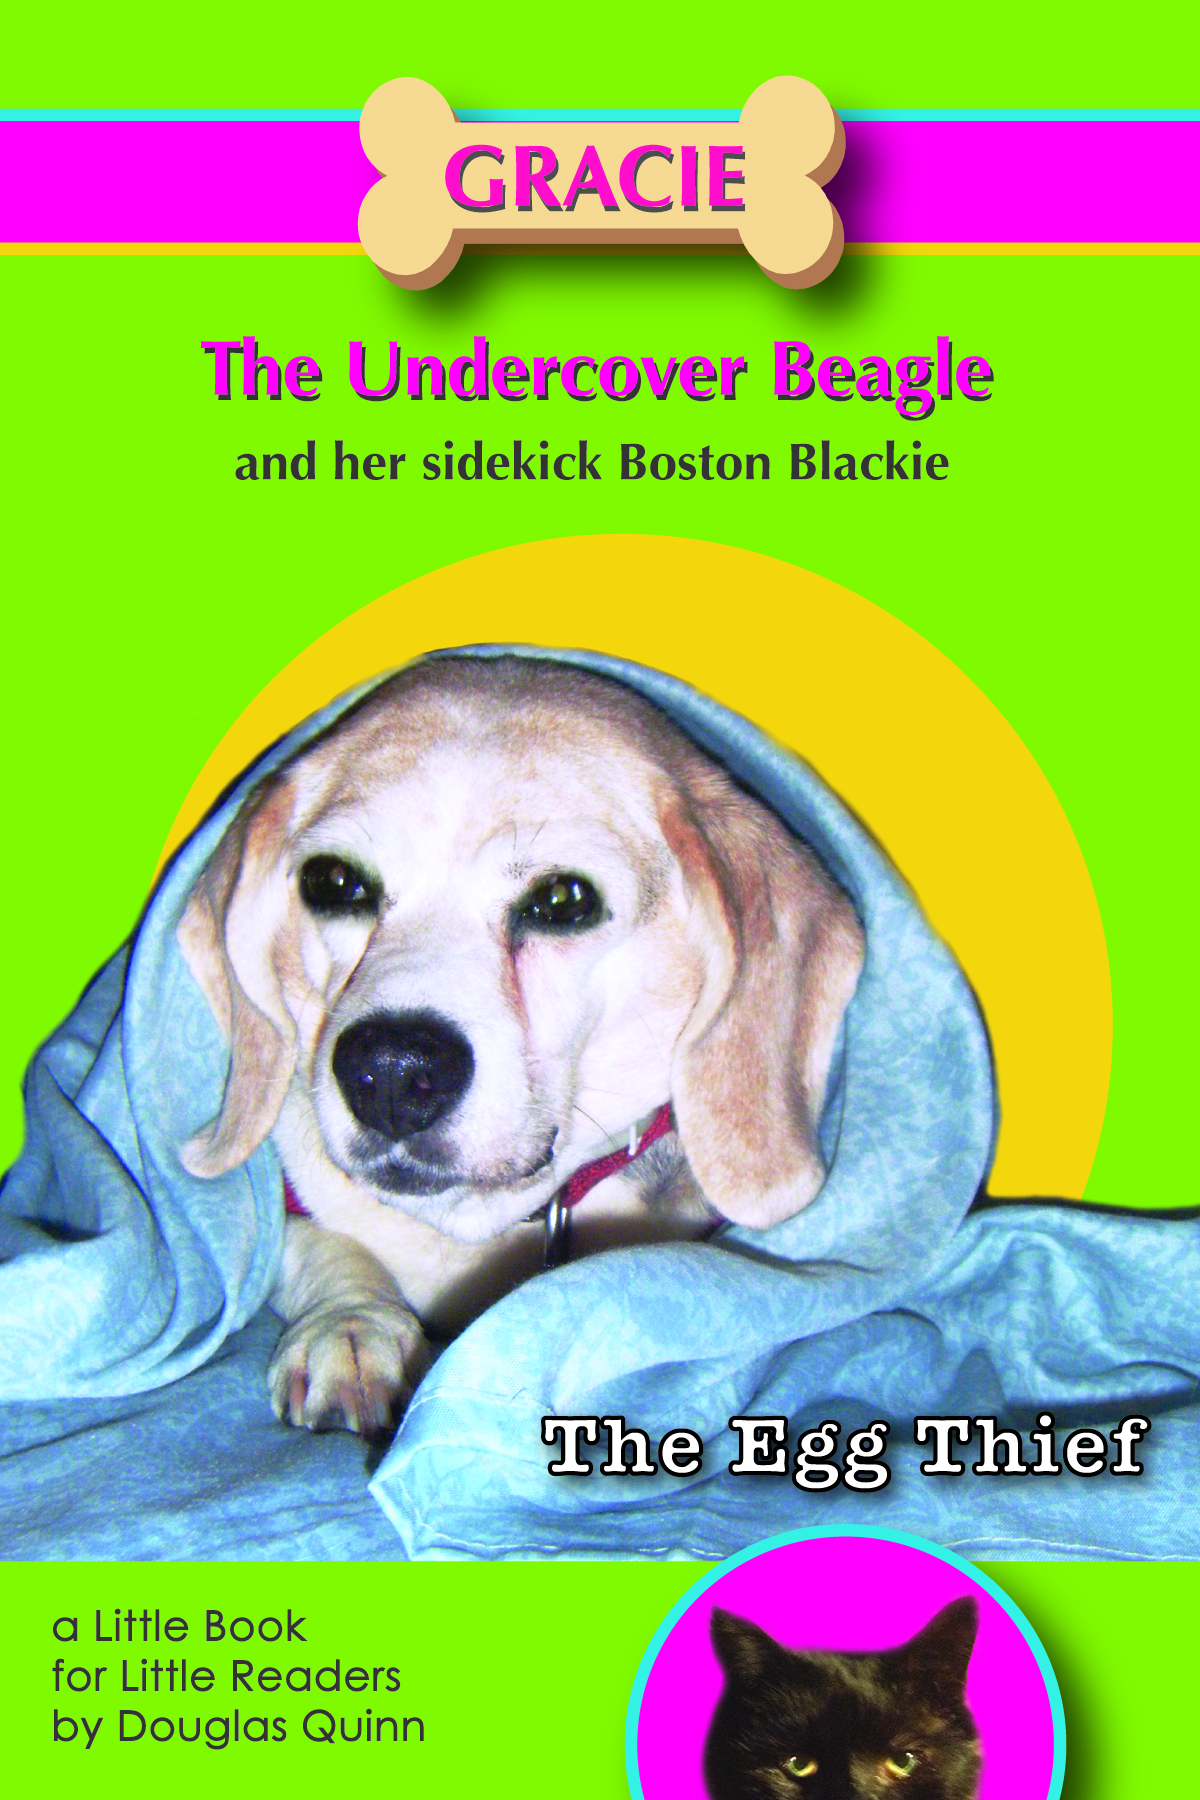 Gracie the Undercover Beagle and her Sidecick Boston Blackie--The Egg Thief